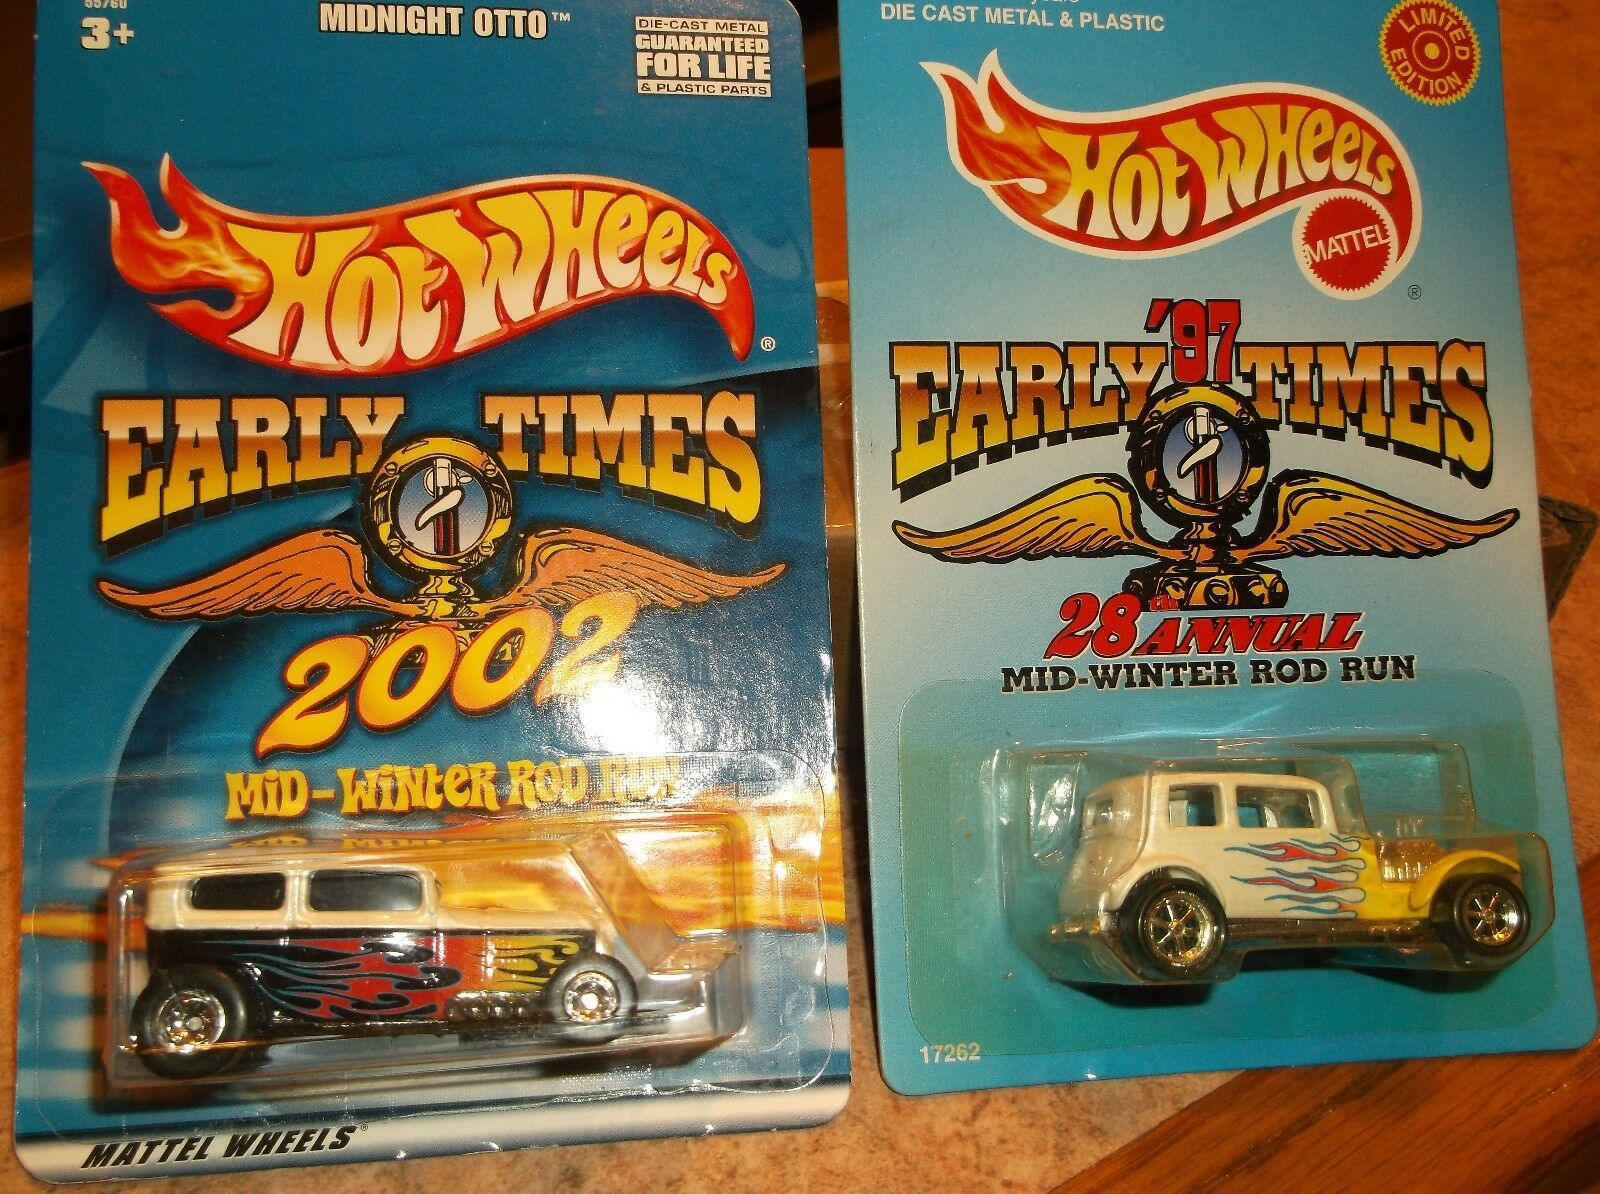 Hot Wheels Limited Edition Lot de 2, Early Times MIDNIGHT OTTO & 32 Ford Sedan